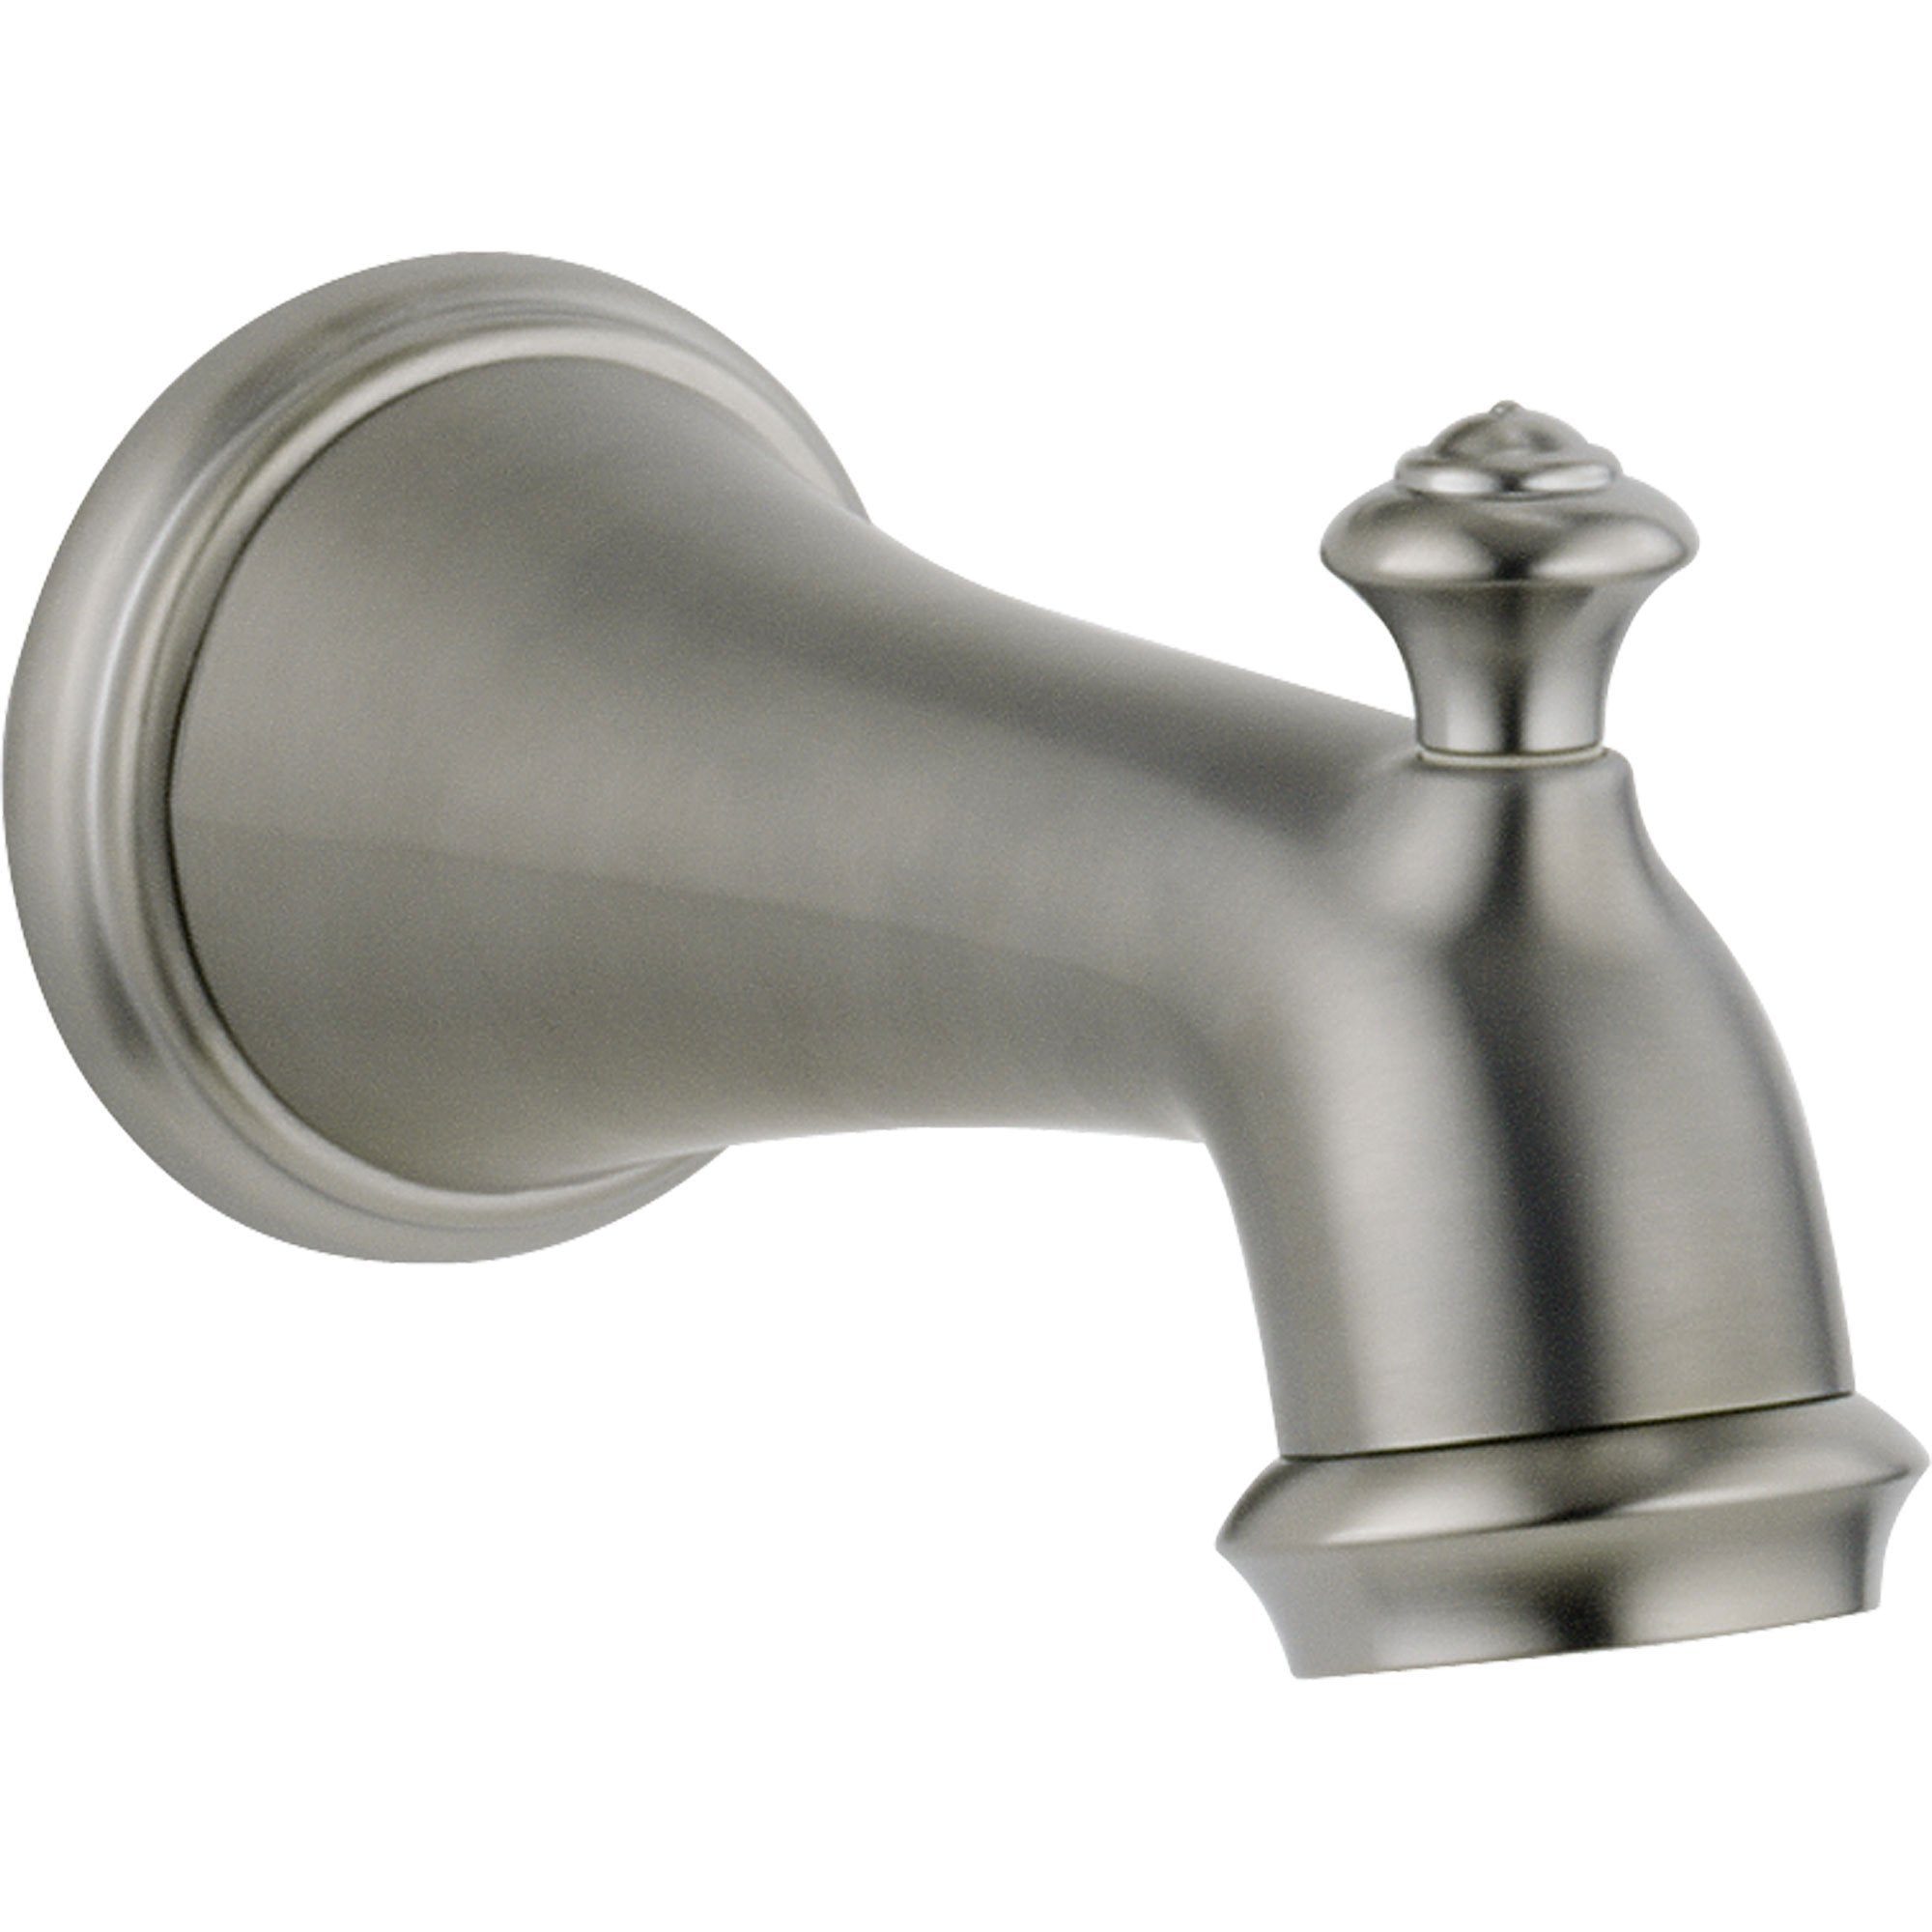 Delta Victorian Stainless Steel Finish Pull-up Diverter Tub Spout 512489